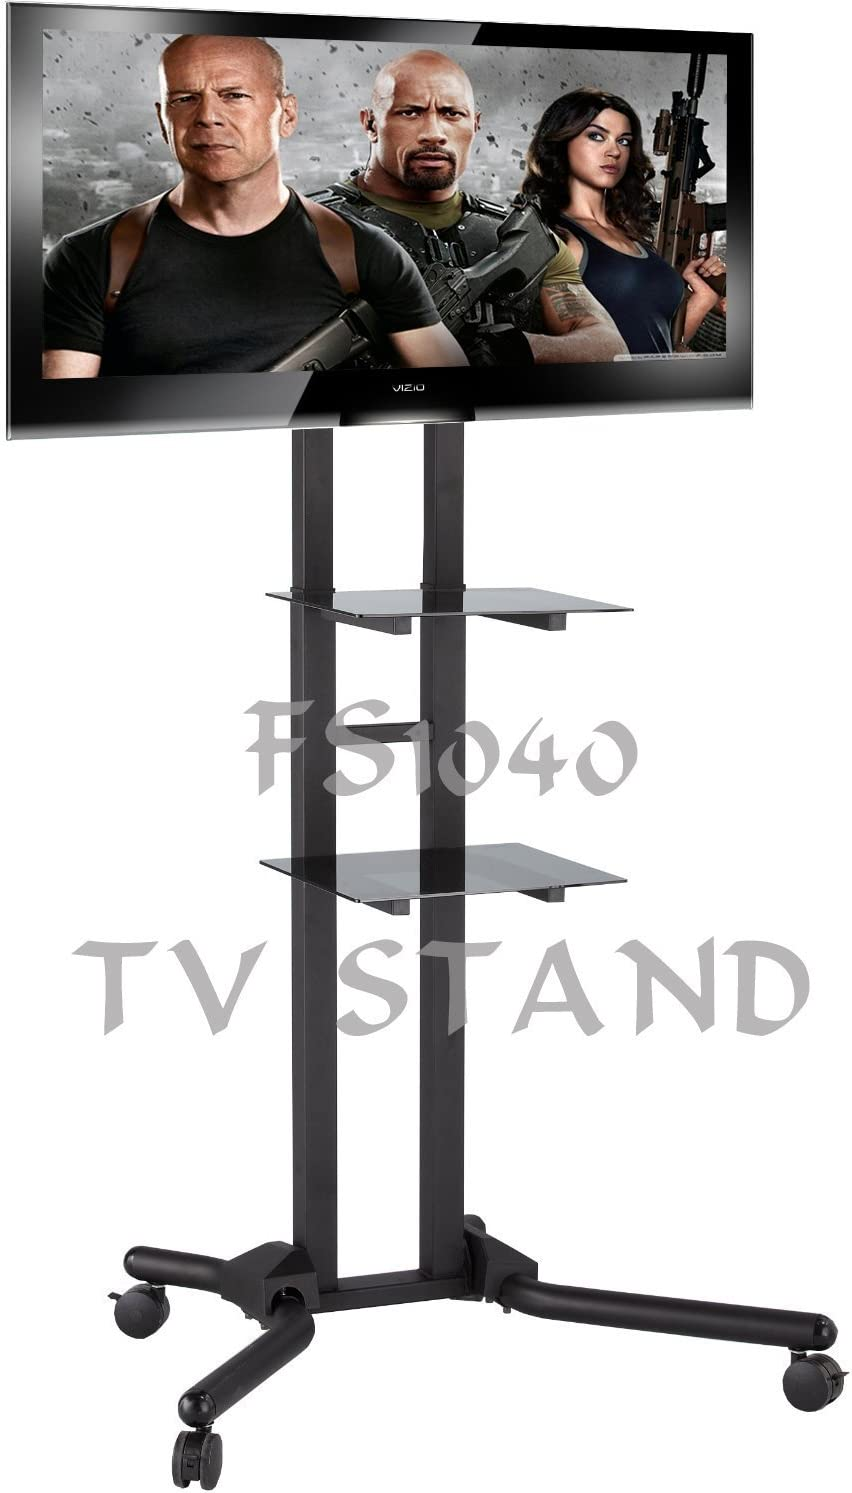 Allcam Fs1040 2m Tall Tv Trolley Stand For 40 65 Lcd Led Tvs Up To Vesa 800x400 2x Black Glass Shelves Tilt Up Down Height Adjustable 146 To 206cm Amazon Co Uk Tv